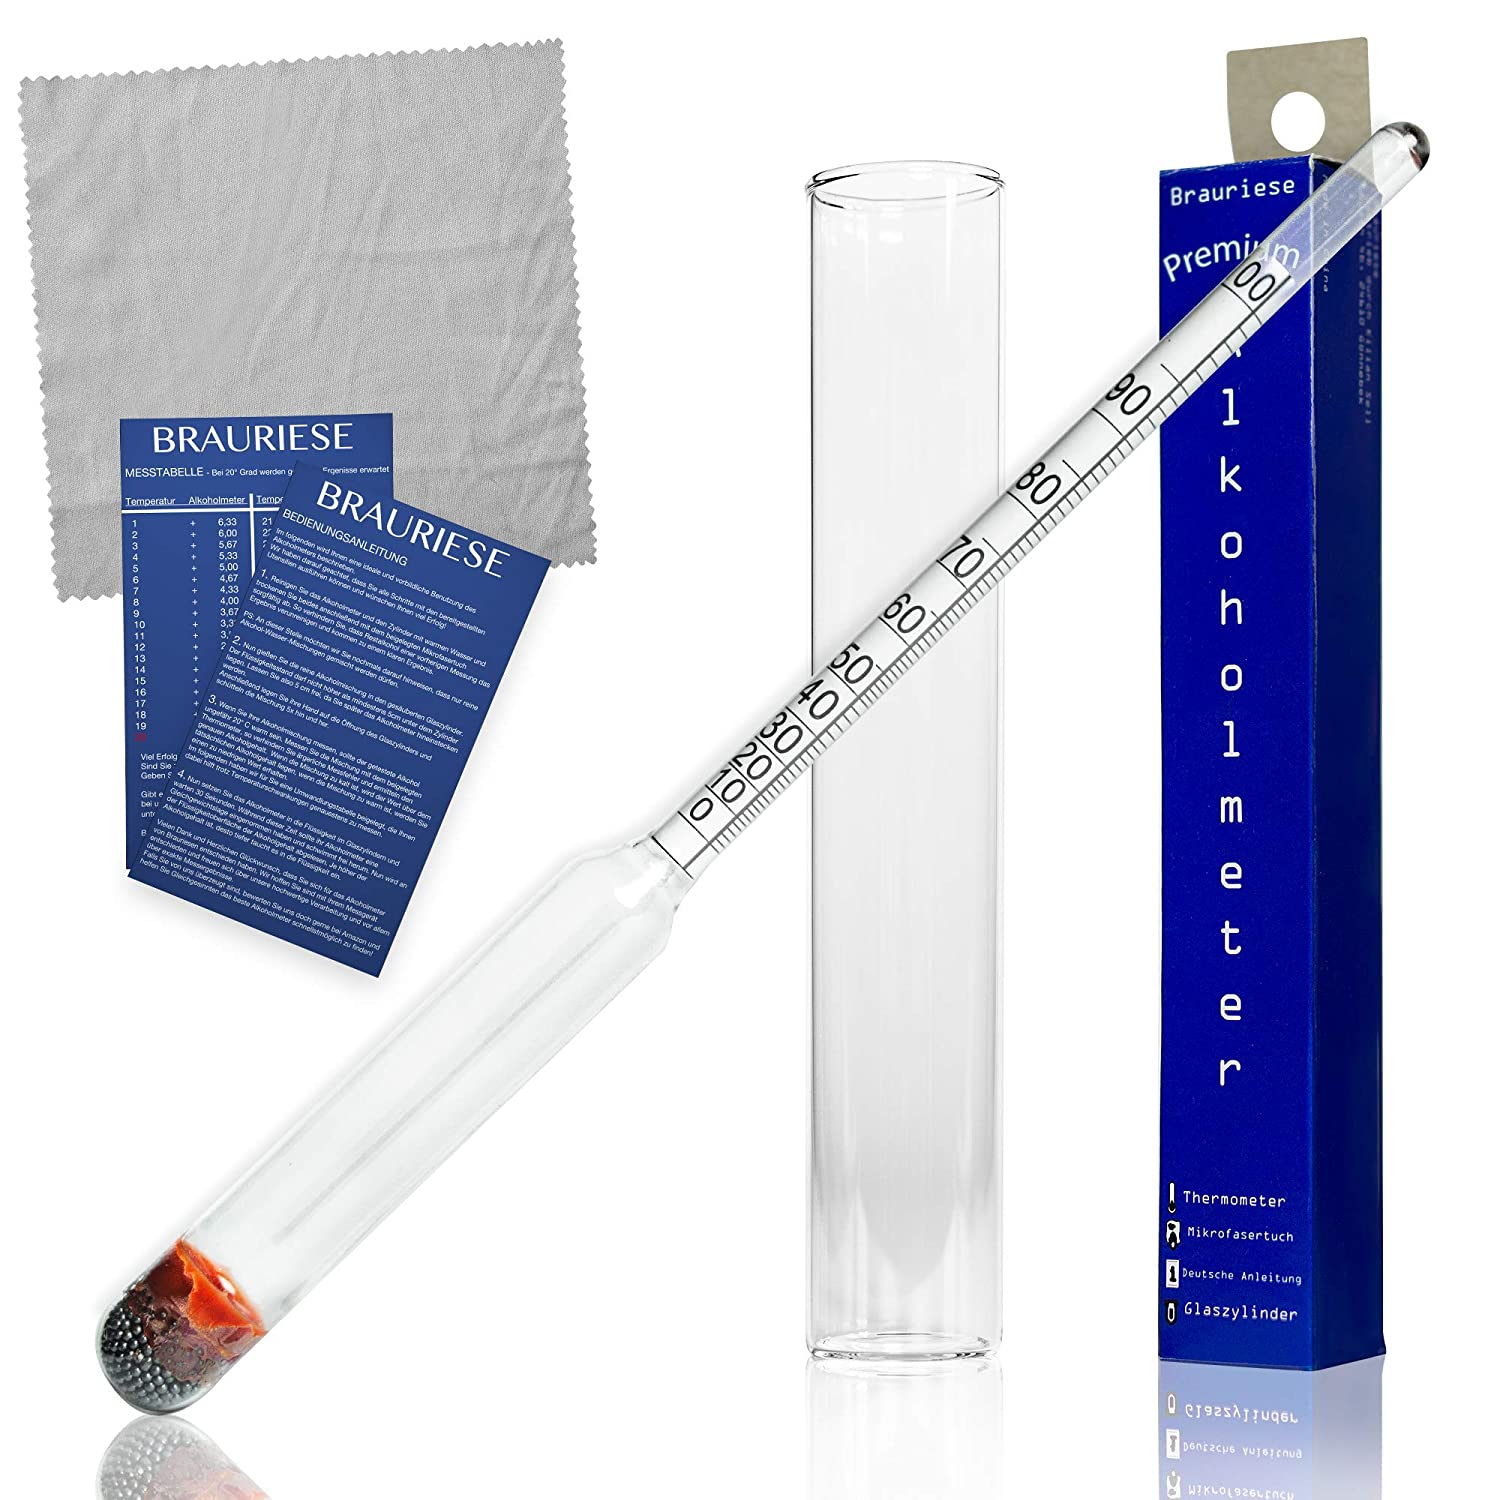 All in One Set Hydrometer Alcohol Braugiese Premium Alcohol Meter Set Alcohol Spindle with Glass Cylinder and Practical Microfibre Cloth Without Thermometer 20 cm